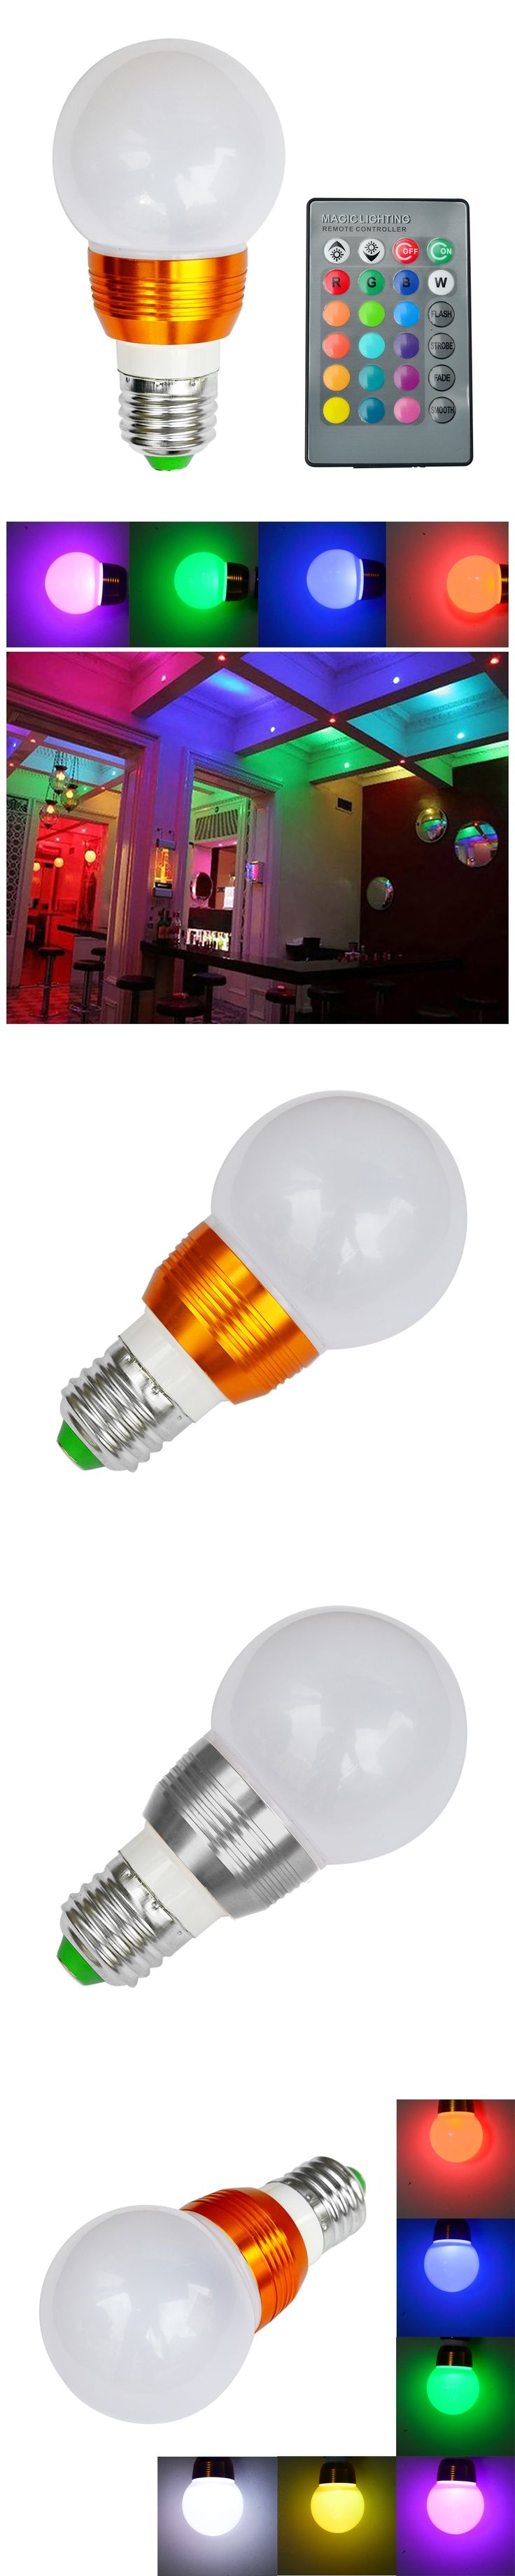 Jiawen 3W  E27 RGB LED Bulb 16 Color Change Lamp spotlight 85-265V for Home Party decoration with IR Remote